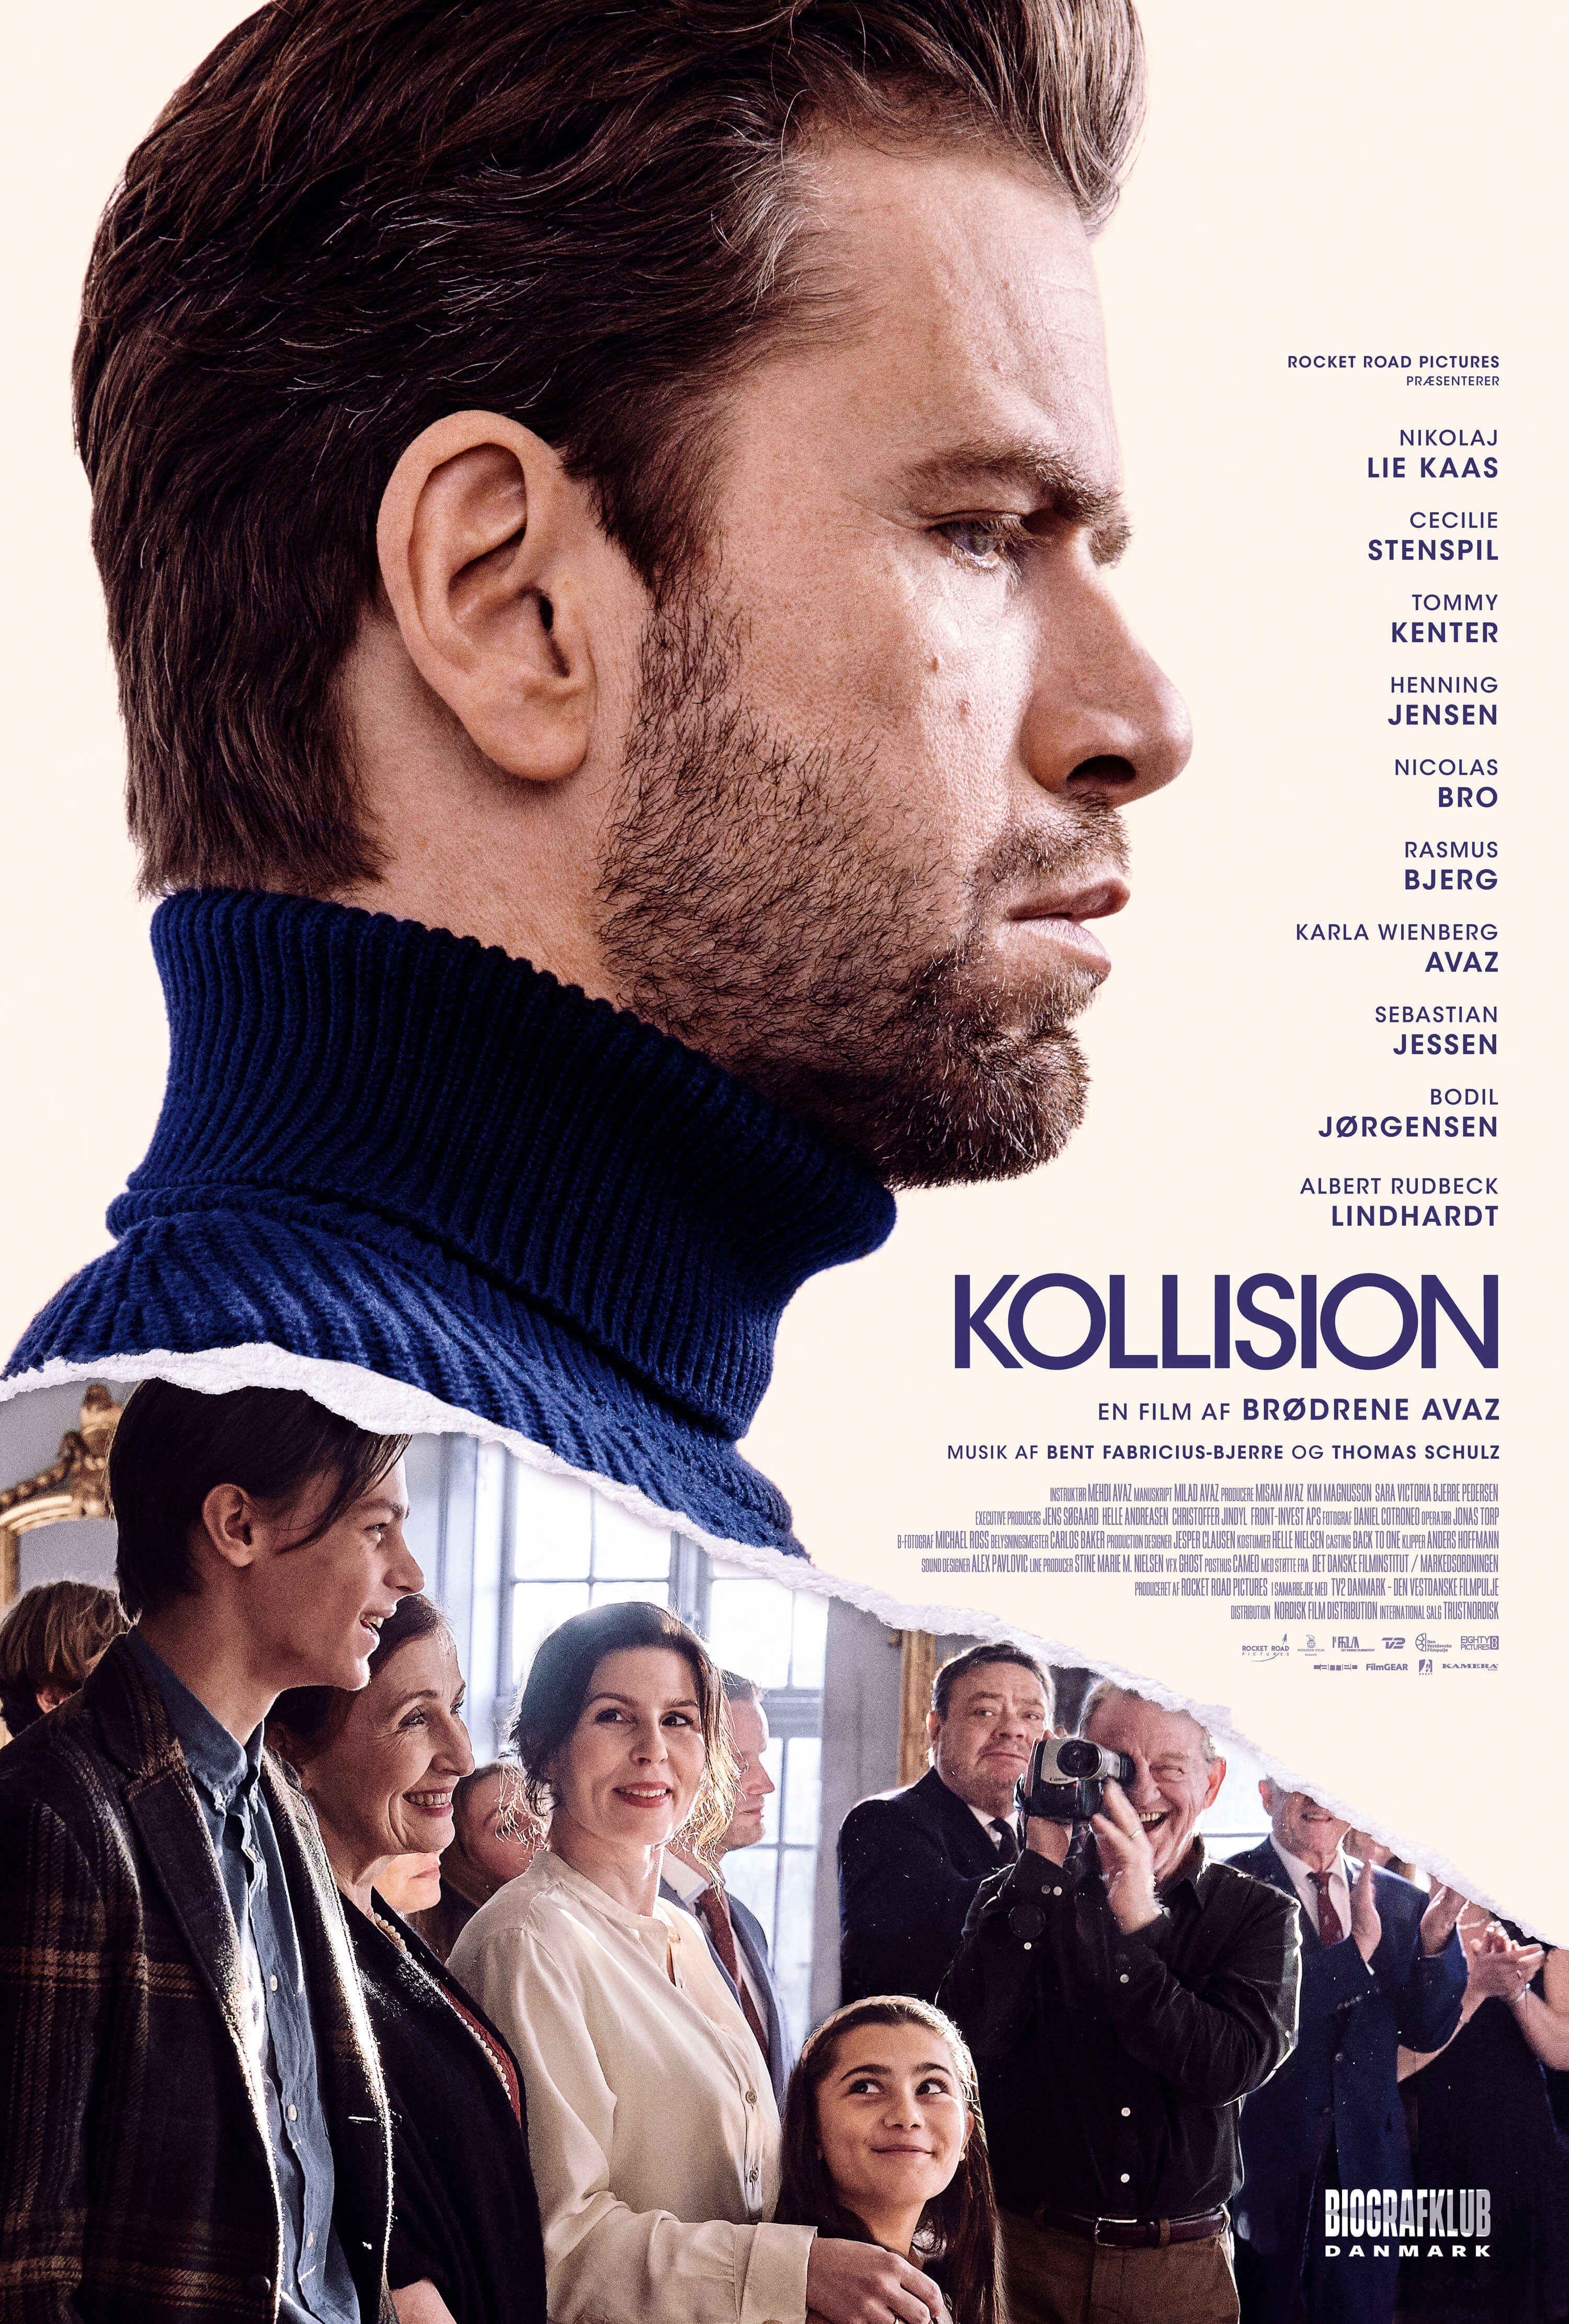 Kollision. Poster for the movie.